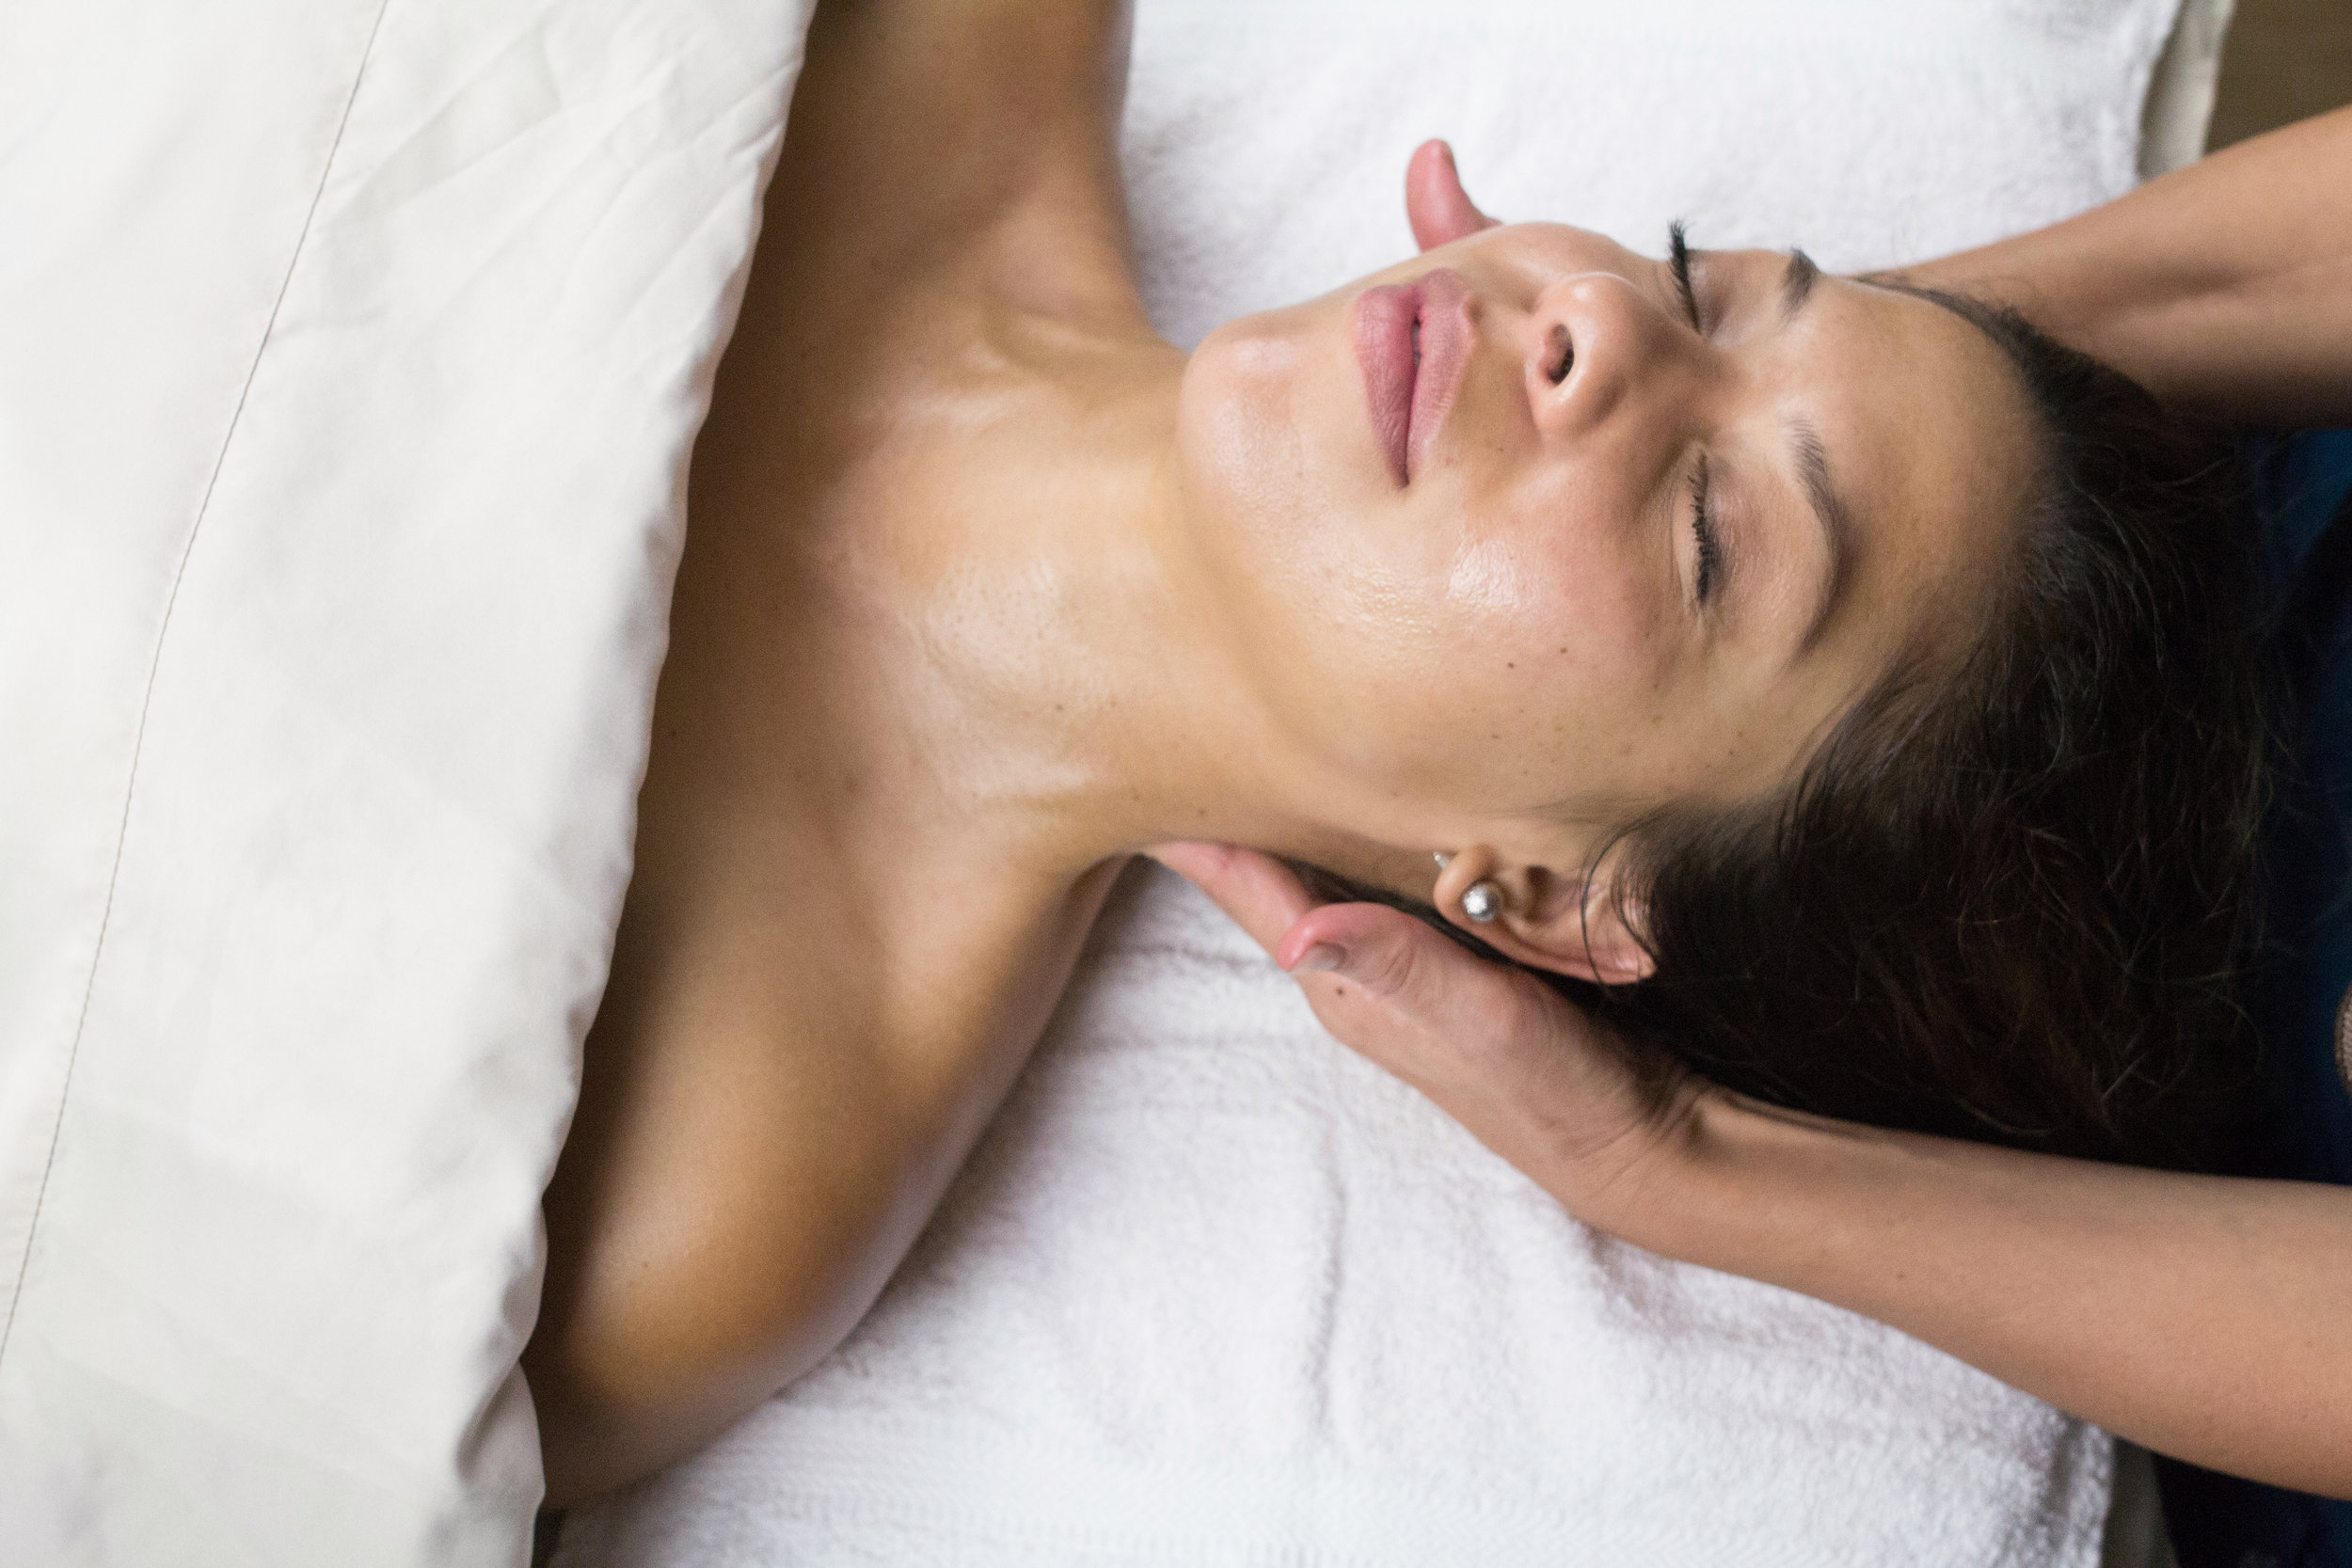 Signature Massage - $69 | 60 min. $89 | 75 min. $109 | 90 min.Combines Swedish technique and Eastern influences to achieve a relaxing full-body massage with long flowing strokes. Focuses on releasing tightness and tension, while increasing blood flow and flushing out toxins.Our aim is to relax the mind and body, while providing a tranquil sense of well-being.